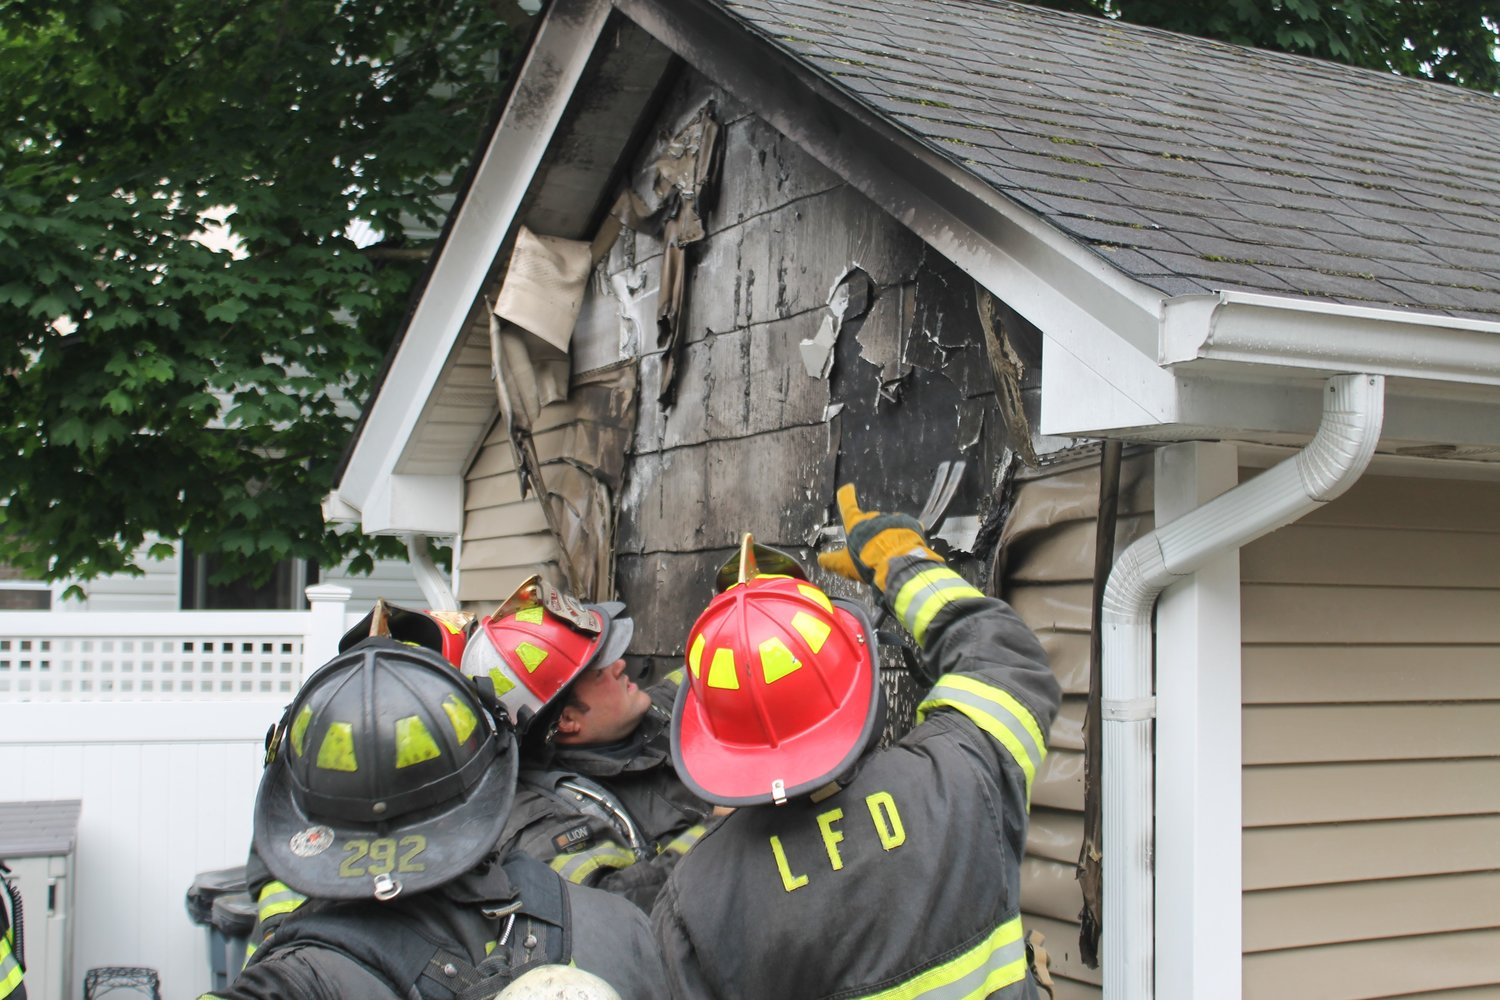 Lynbrook firefighters inspected the damage to the garage and made sure the fire was out.